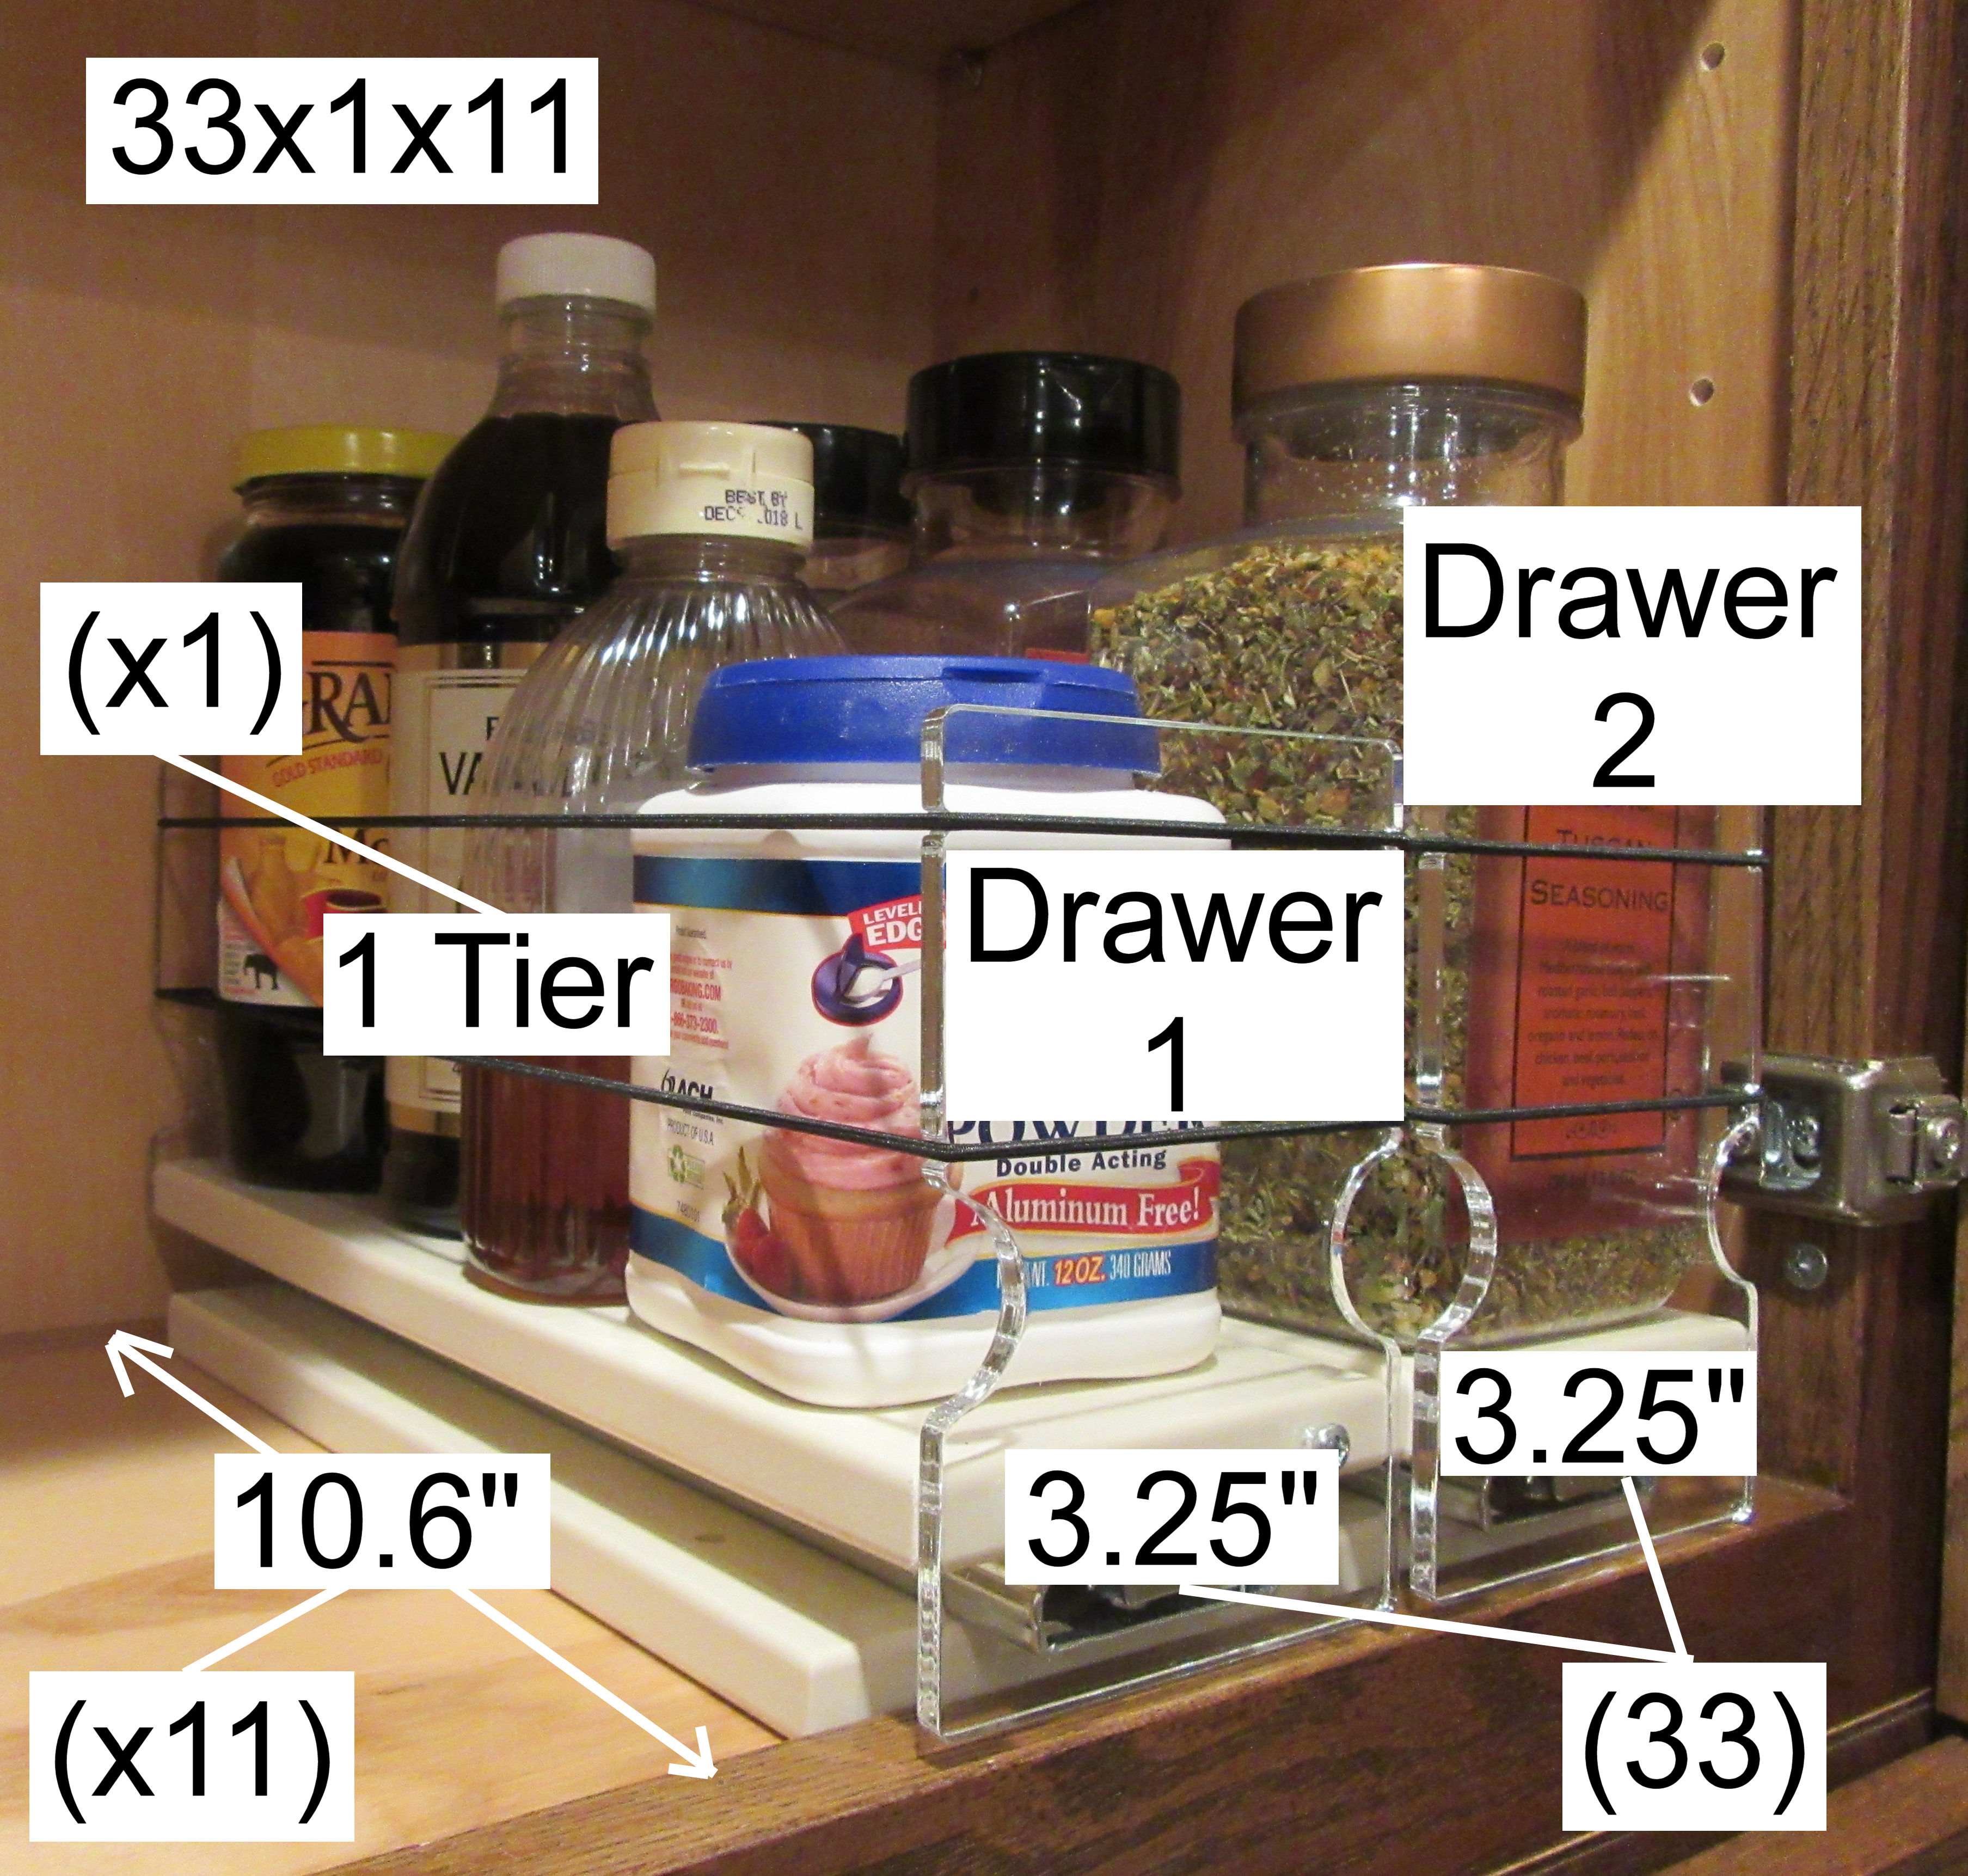 How the 33x1x11 Spice Rack is named